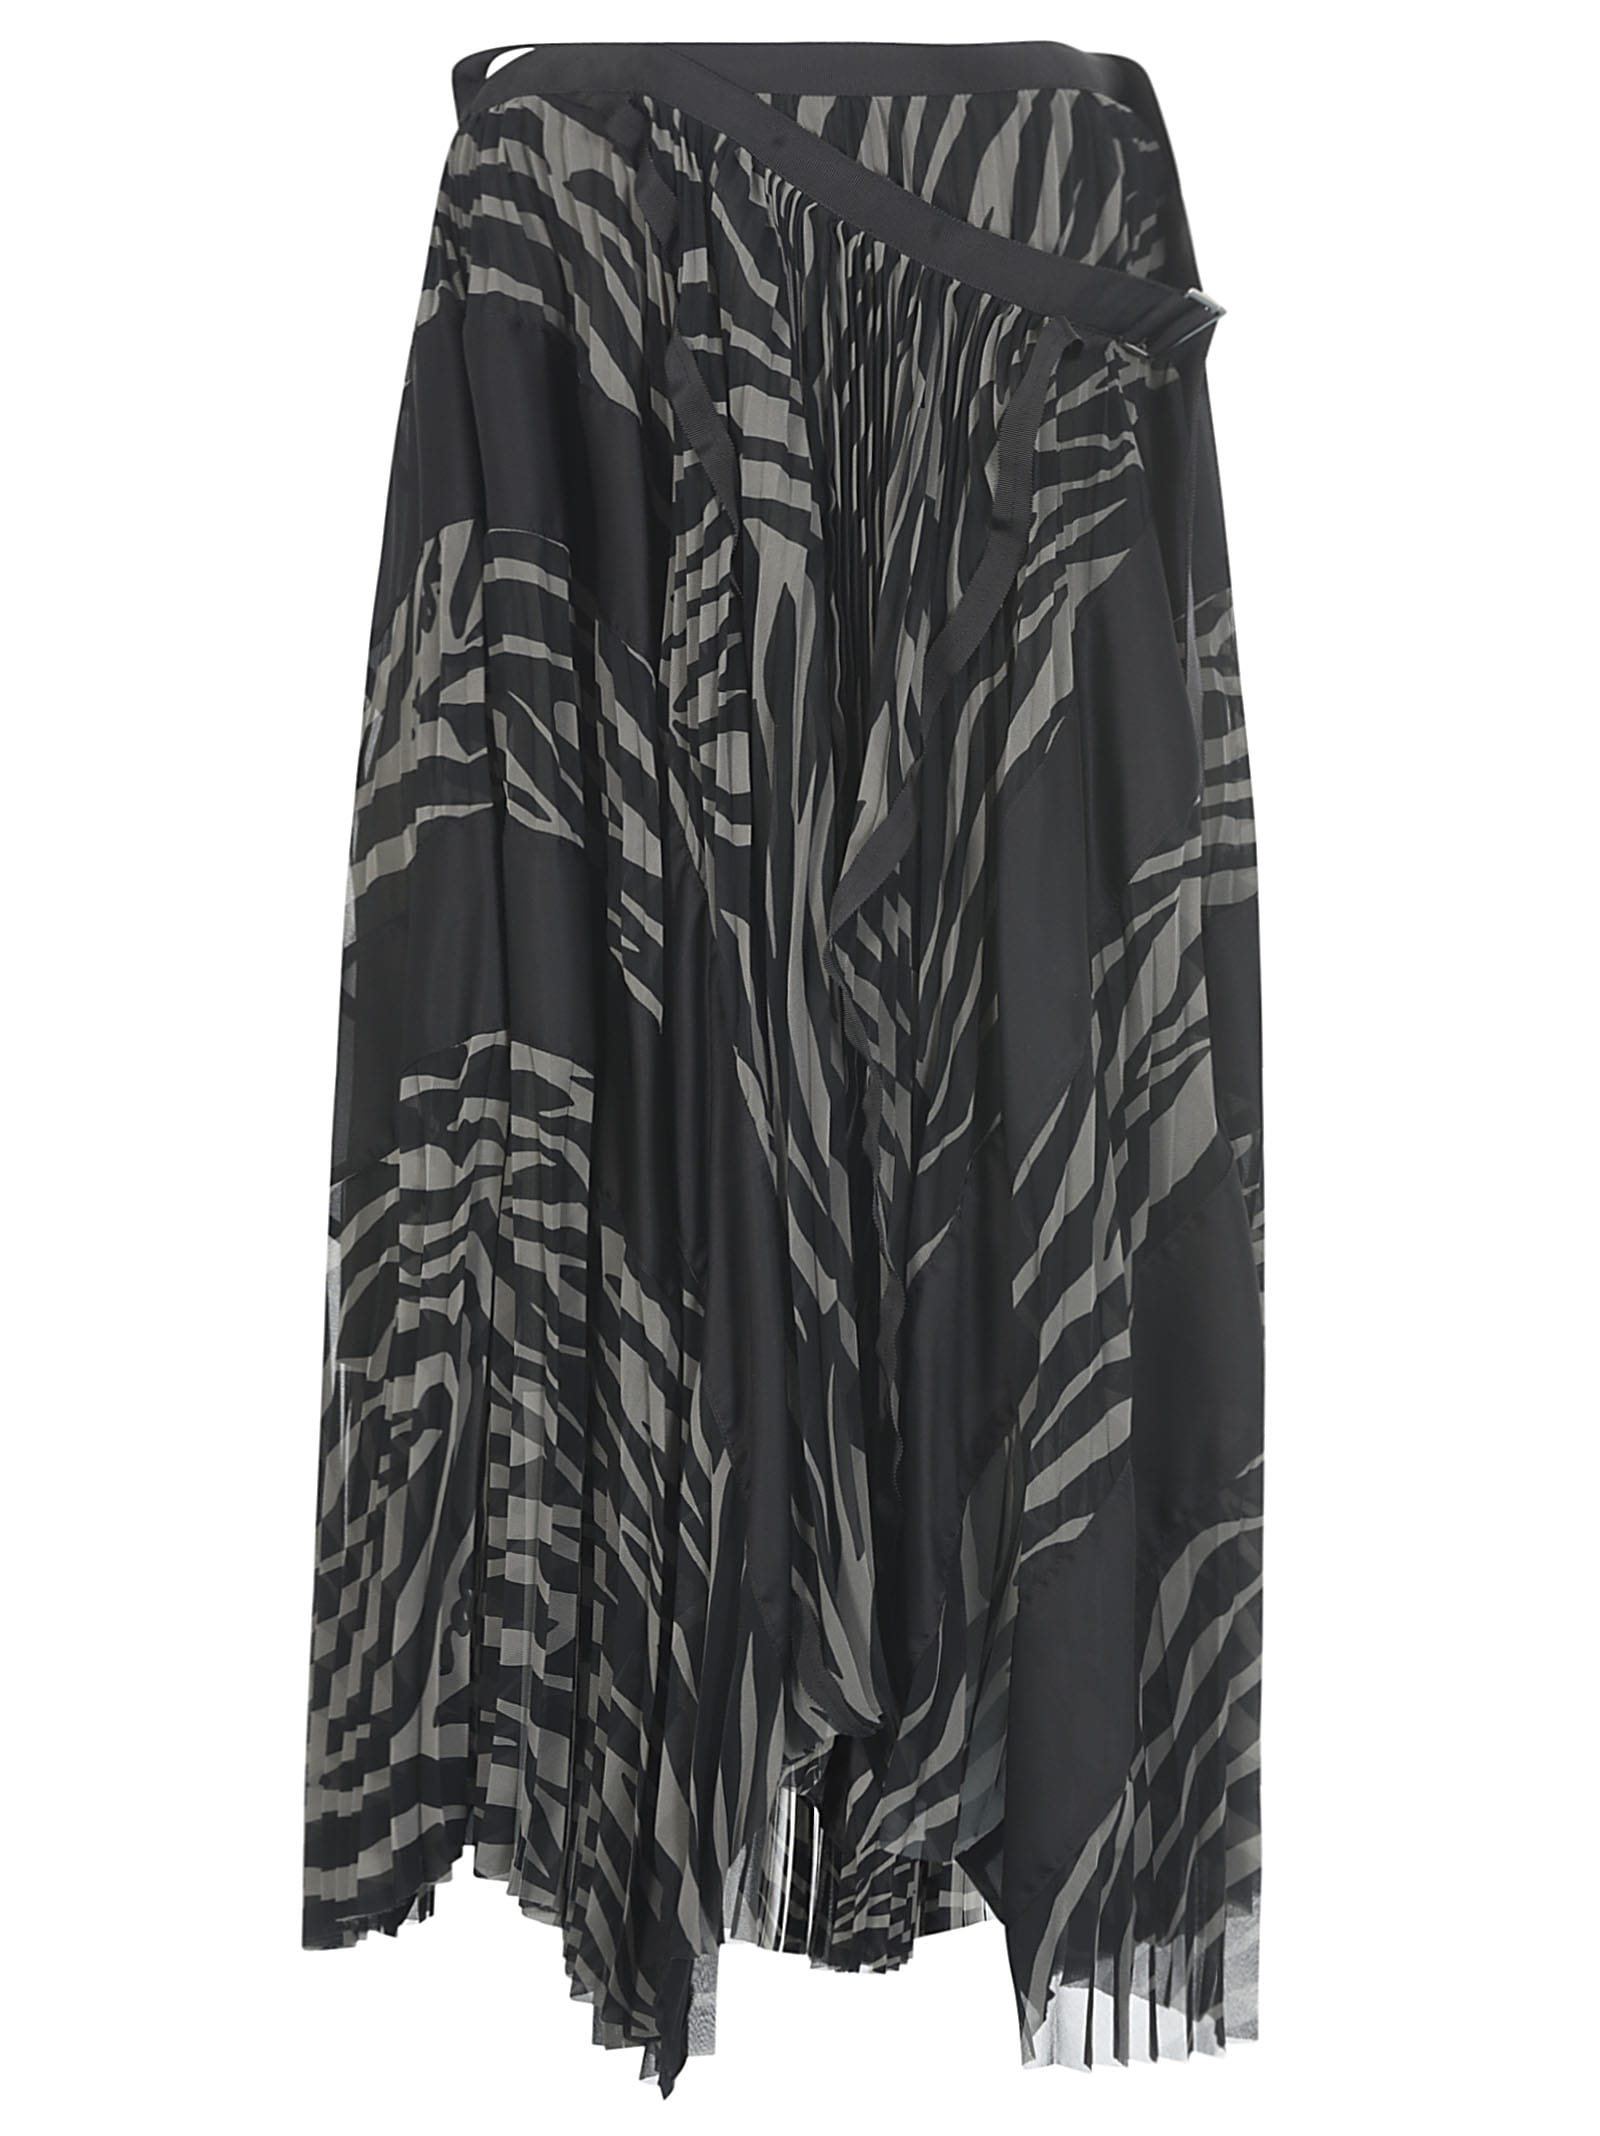 Sacai Pleated Printed Skirt